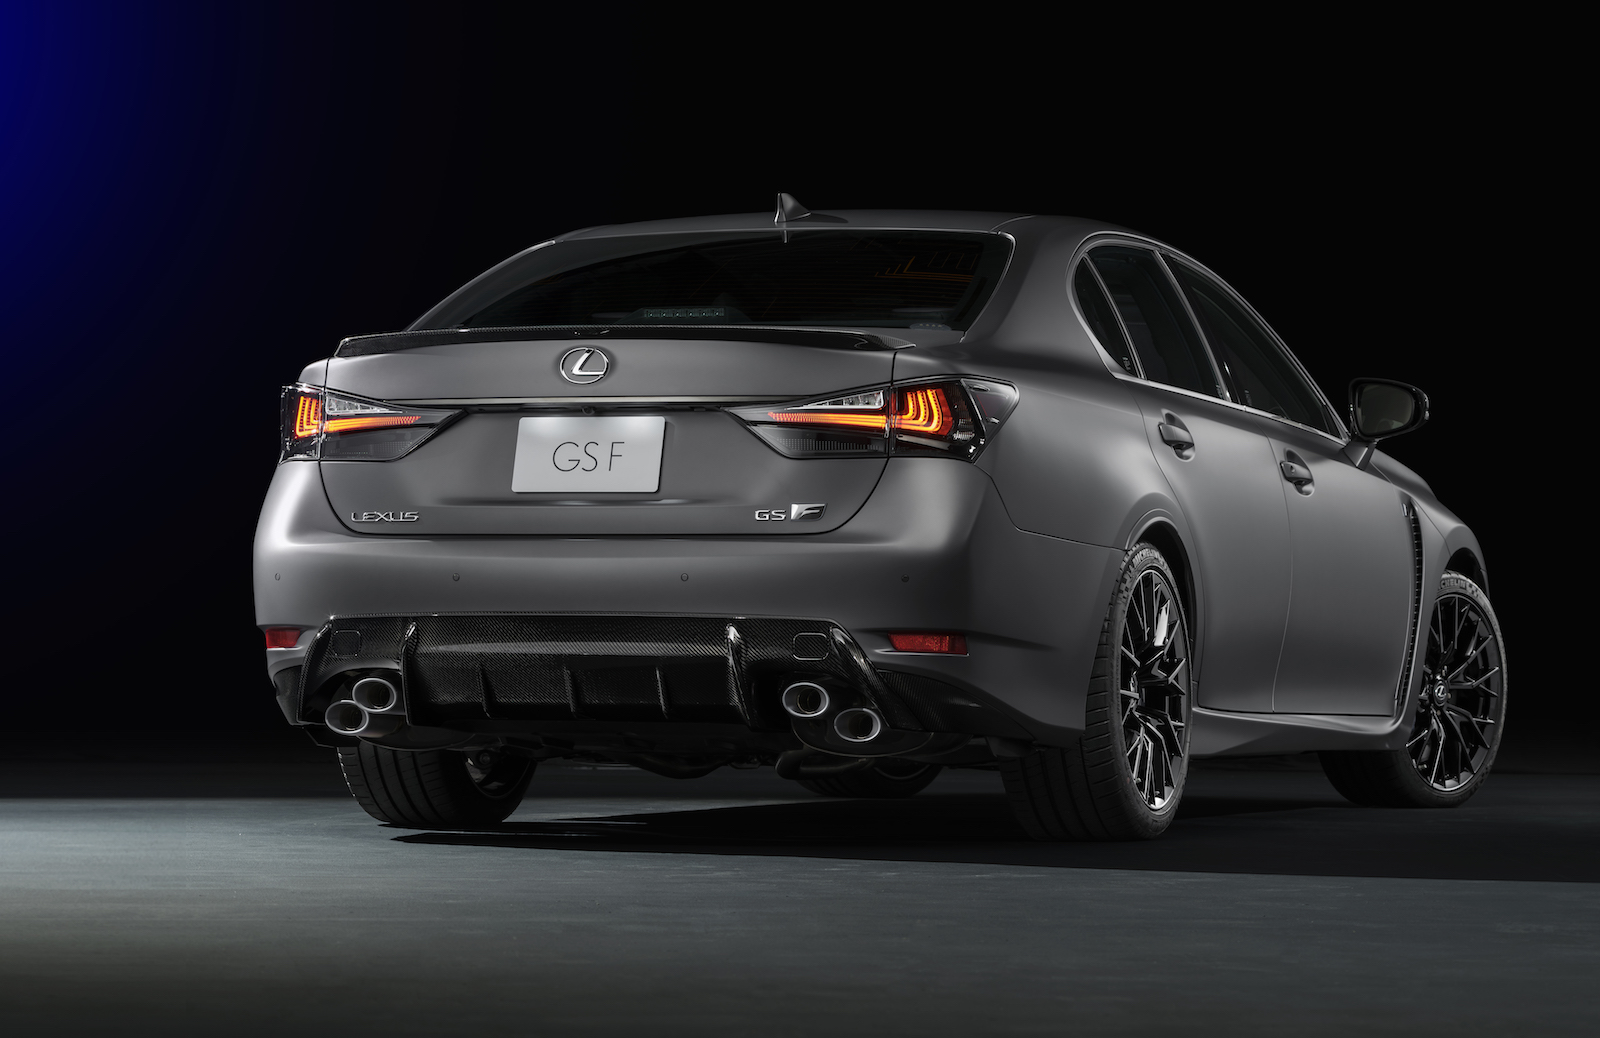 lexus rc f gs f matte grey special editions coming to australia in 2018 performancedrive. Black Bedroom Furniture Sets. Home Design Ideas